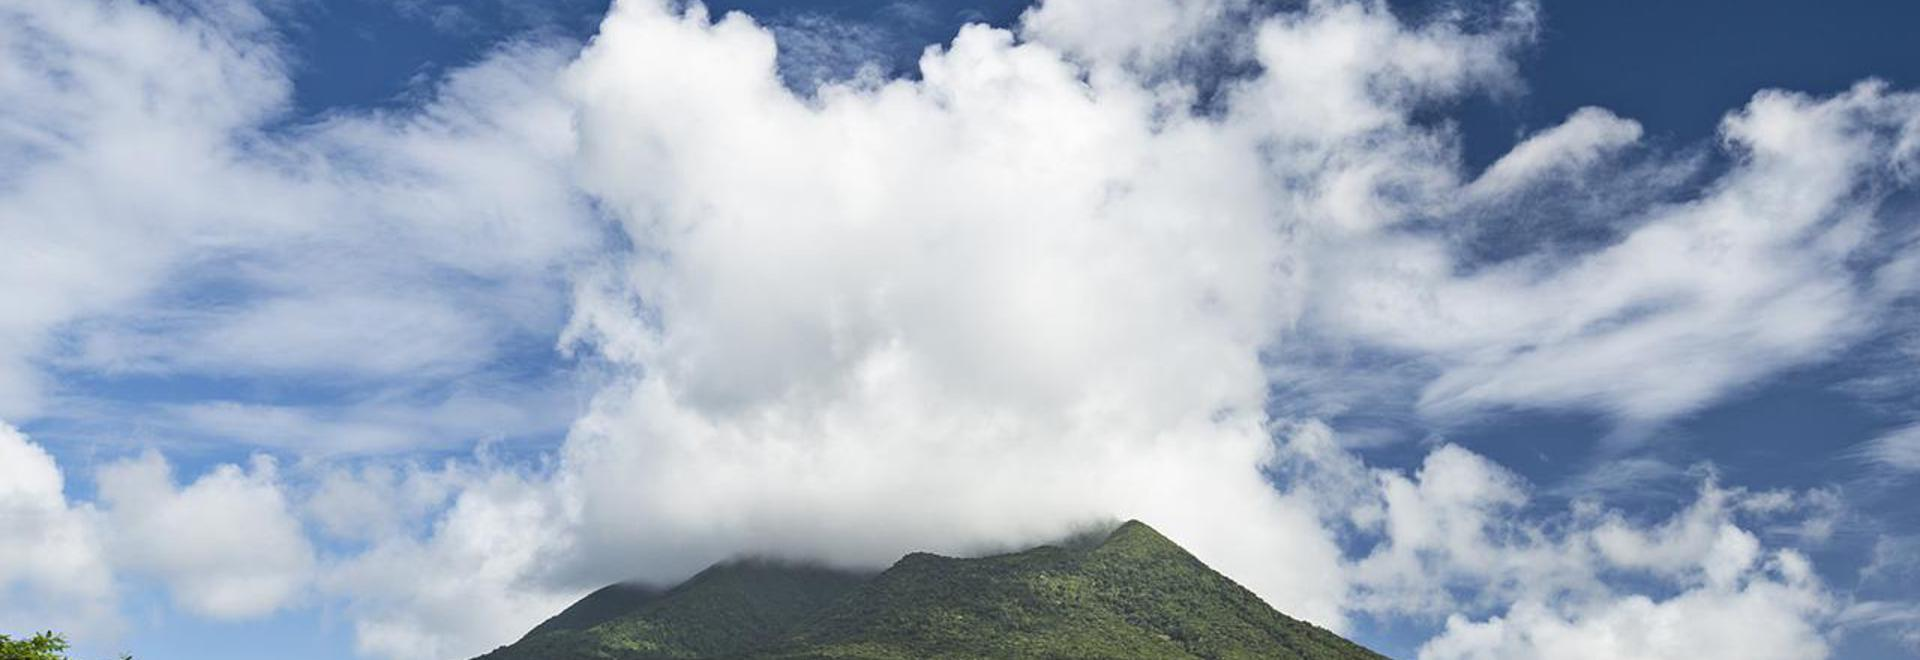 THE LUSH GREENERY OF ST KITTS AND NEVIS